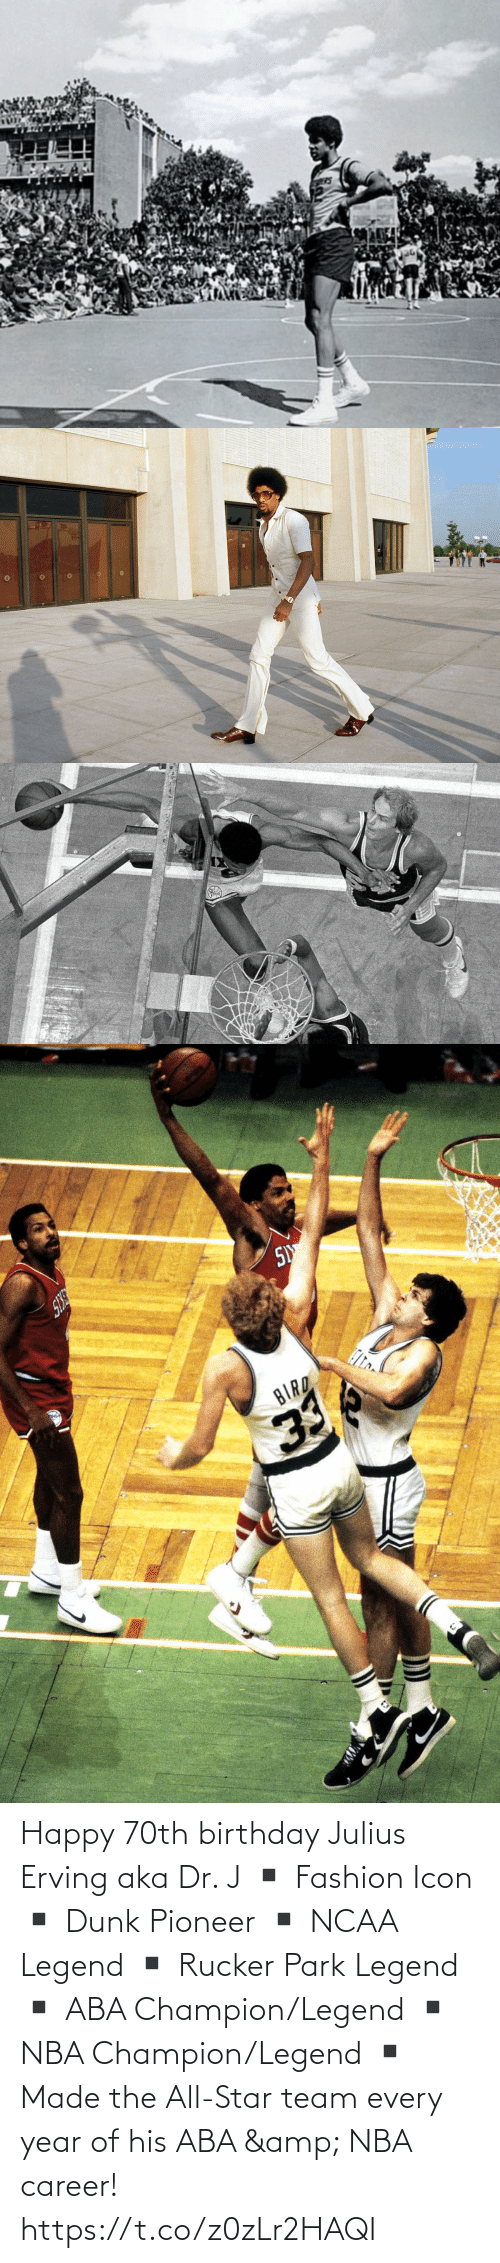 Fashion: Happy 70th birthday Julius Erving aka Dr. J  ▪️ Fashion Icon ▪️ Dunk Pioneer ▪️ NCAA Legend ▪️ Rucker Park Legend ▪️ ABA Champion/Legend ▪️ NBA Champion/Legend ▪️ Made the All-Star team every year of his ABA & NBA career! https://t.co/z0zLr2HAQI